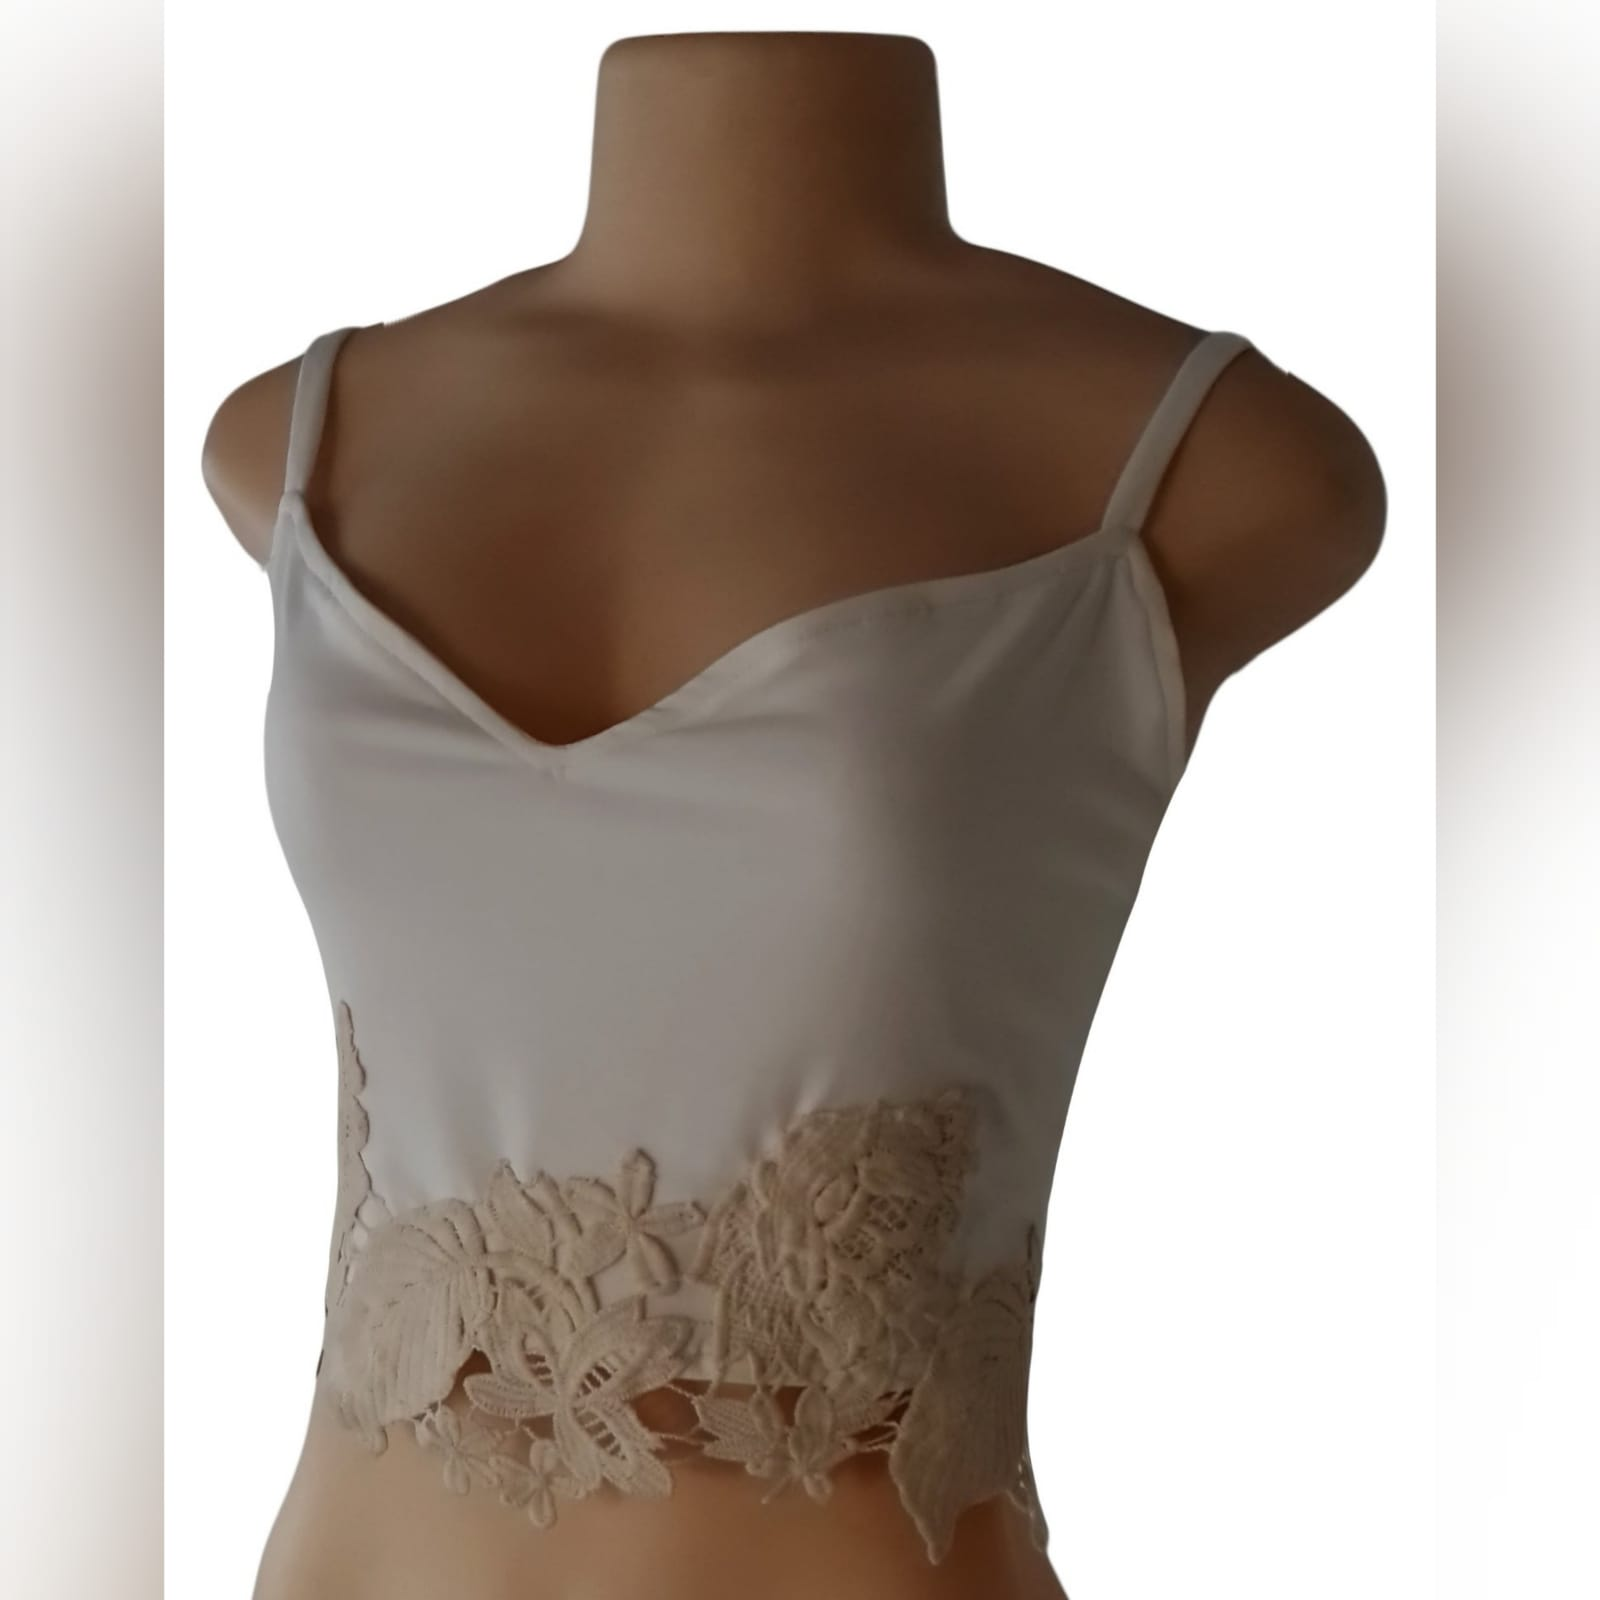 Cream and beige crop top 5 cream and beige crop top with a sweetheart neckline and lace hem detail